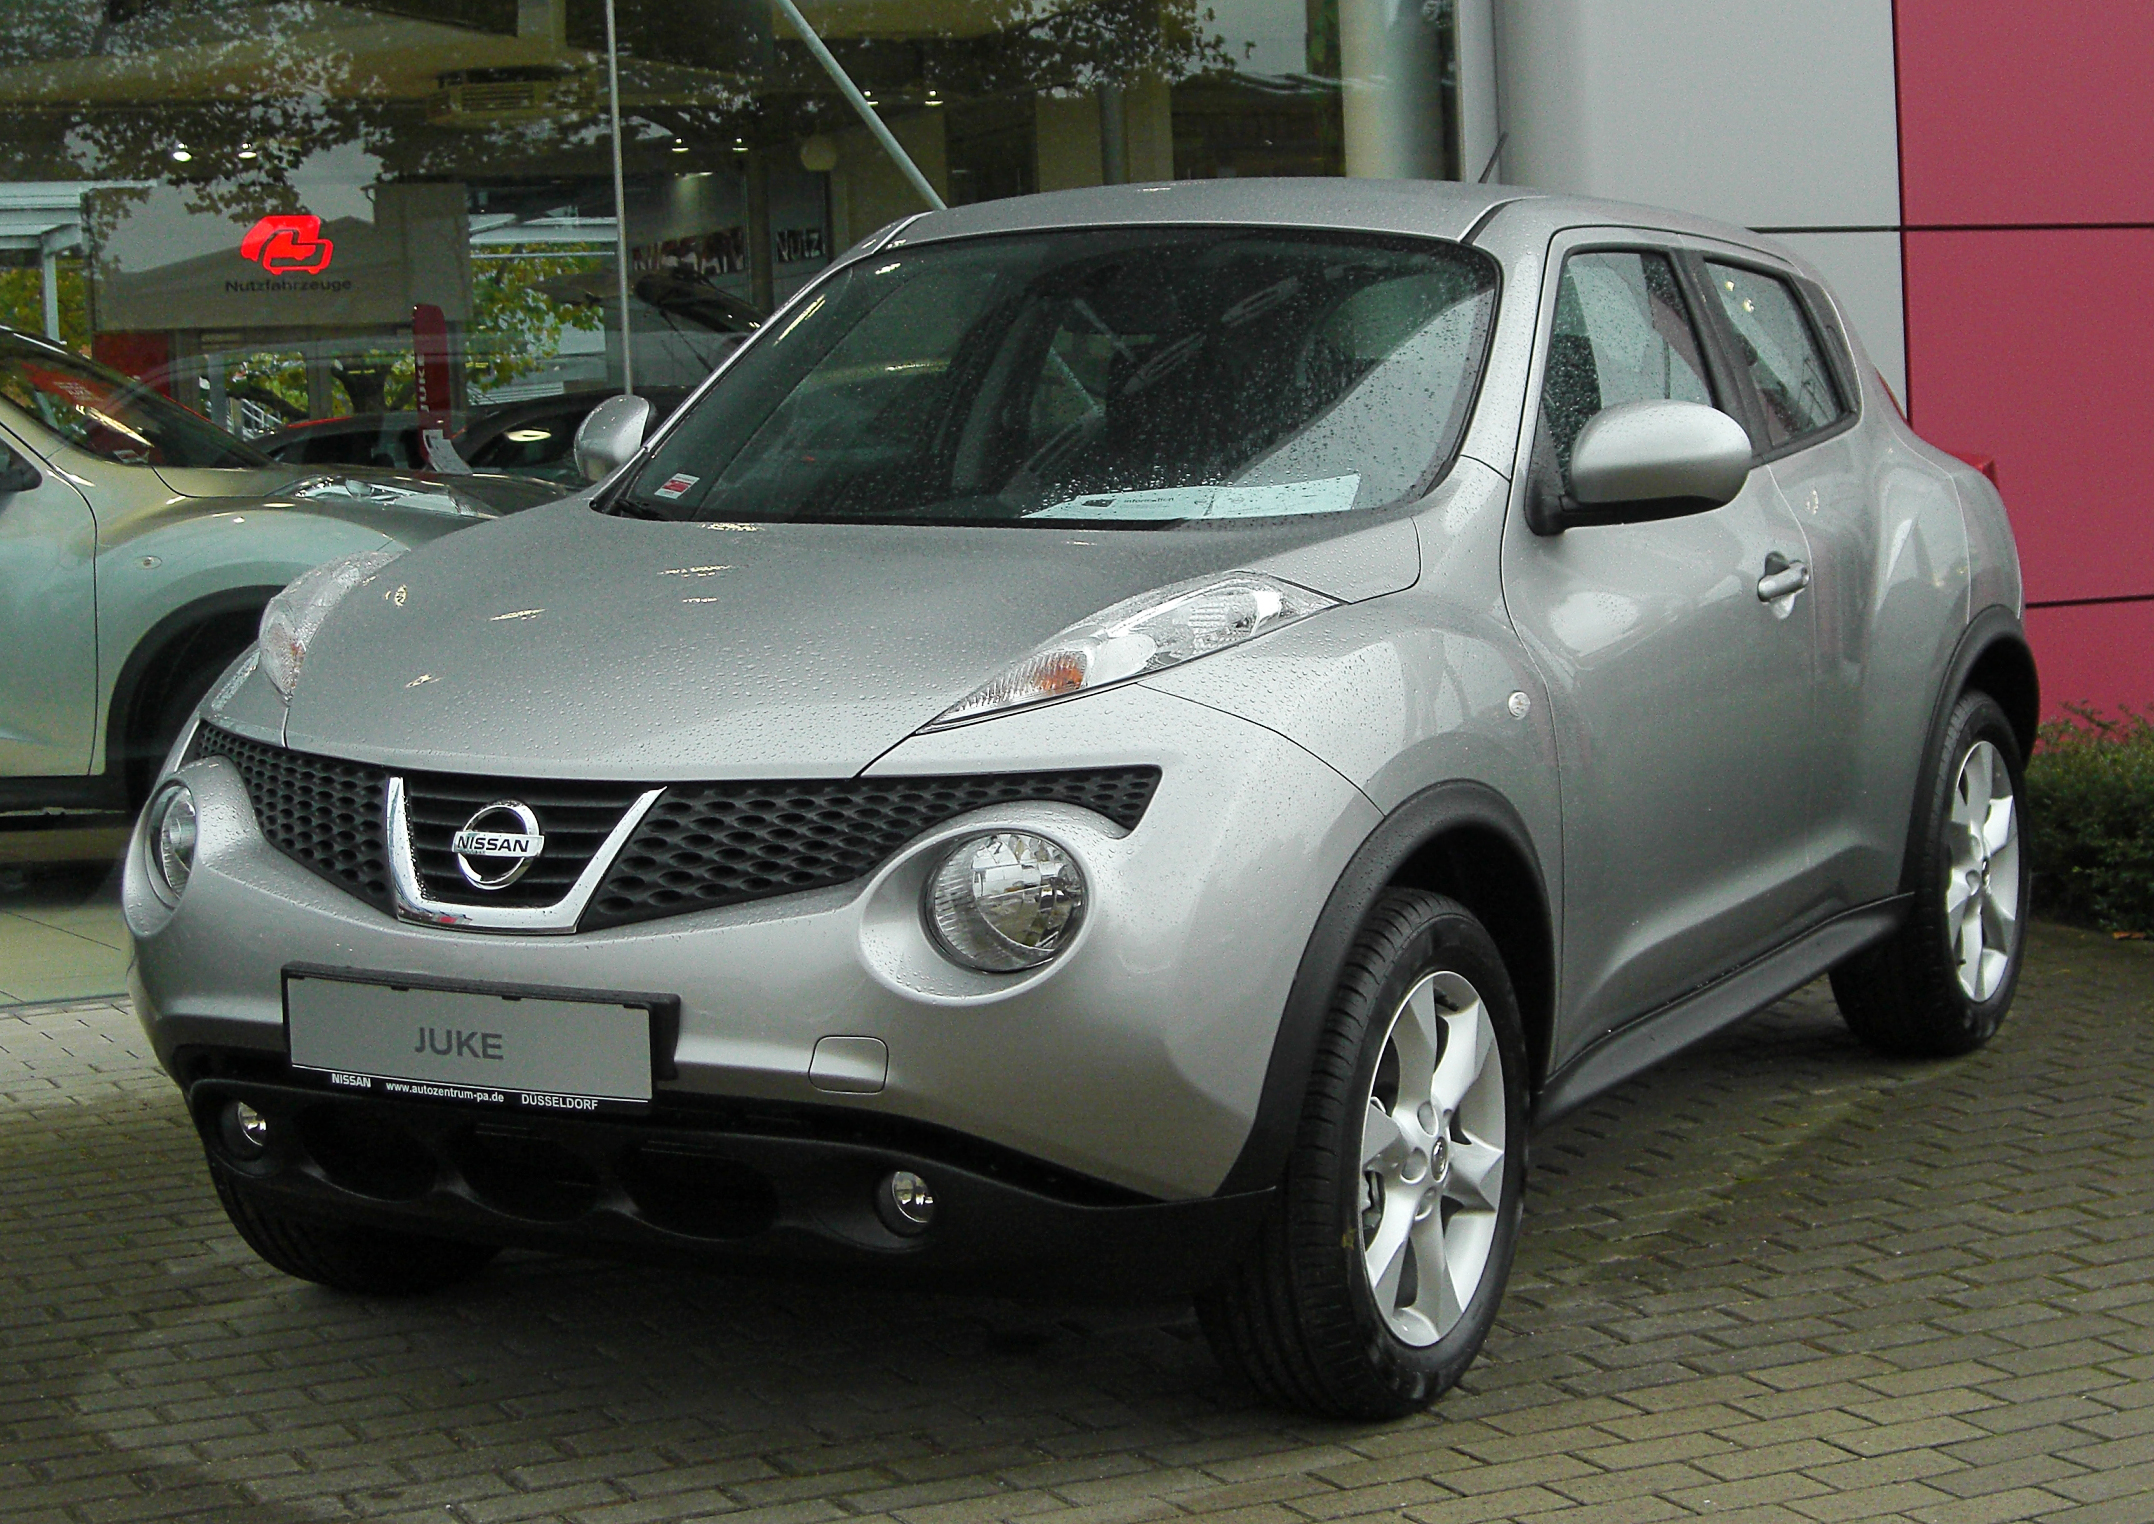 Illustration : NISSAN - JUKE 1.5 DCI 110 WHITE EDITION